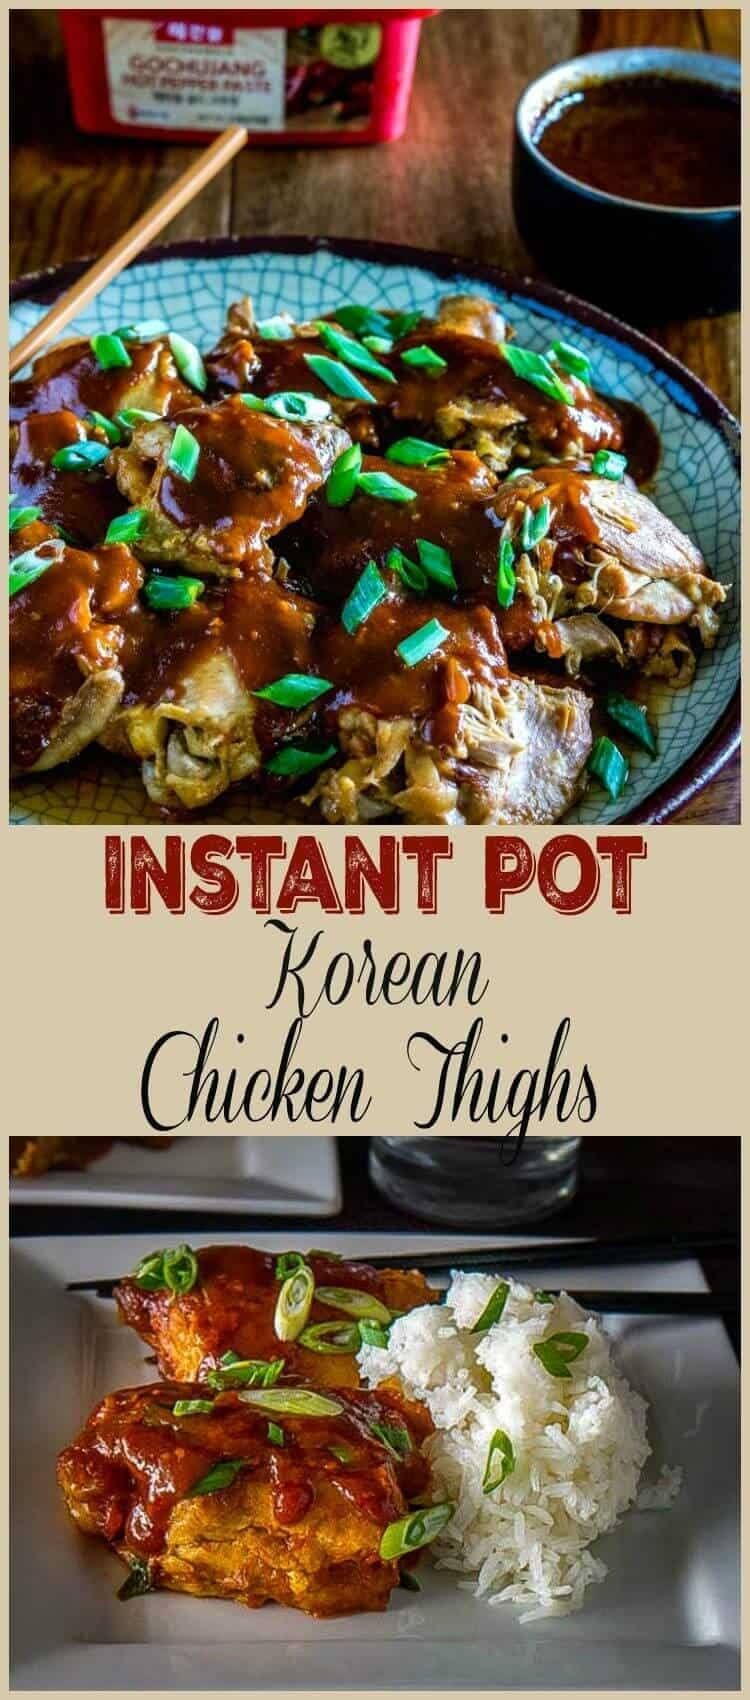 Delight your taste buds with the umami, sweet, and spicy flavors in this Korean-style chicken dish. Serve my moist and tender Korean Chicken Thighs for Pressure Cooker/Instant Pot over jasmine rice. It's quick and easy enough for a weeknight, and exotic enough to steal the show at your next dinner party! #InstantPot #pressurecooker #korean #gochujang #pressurecookerchicken #chickenthighs